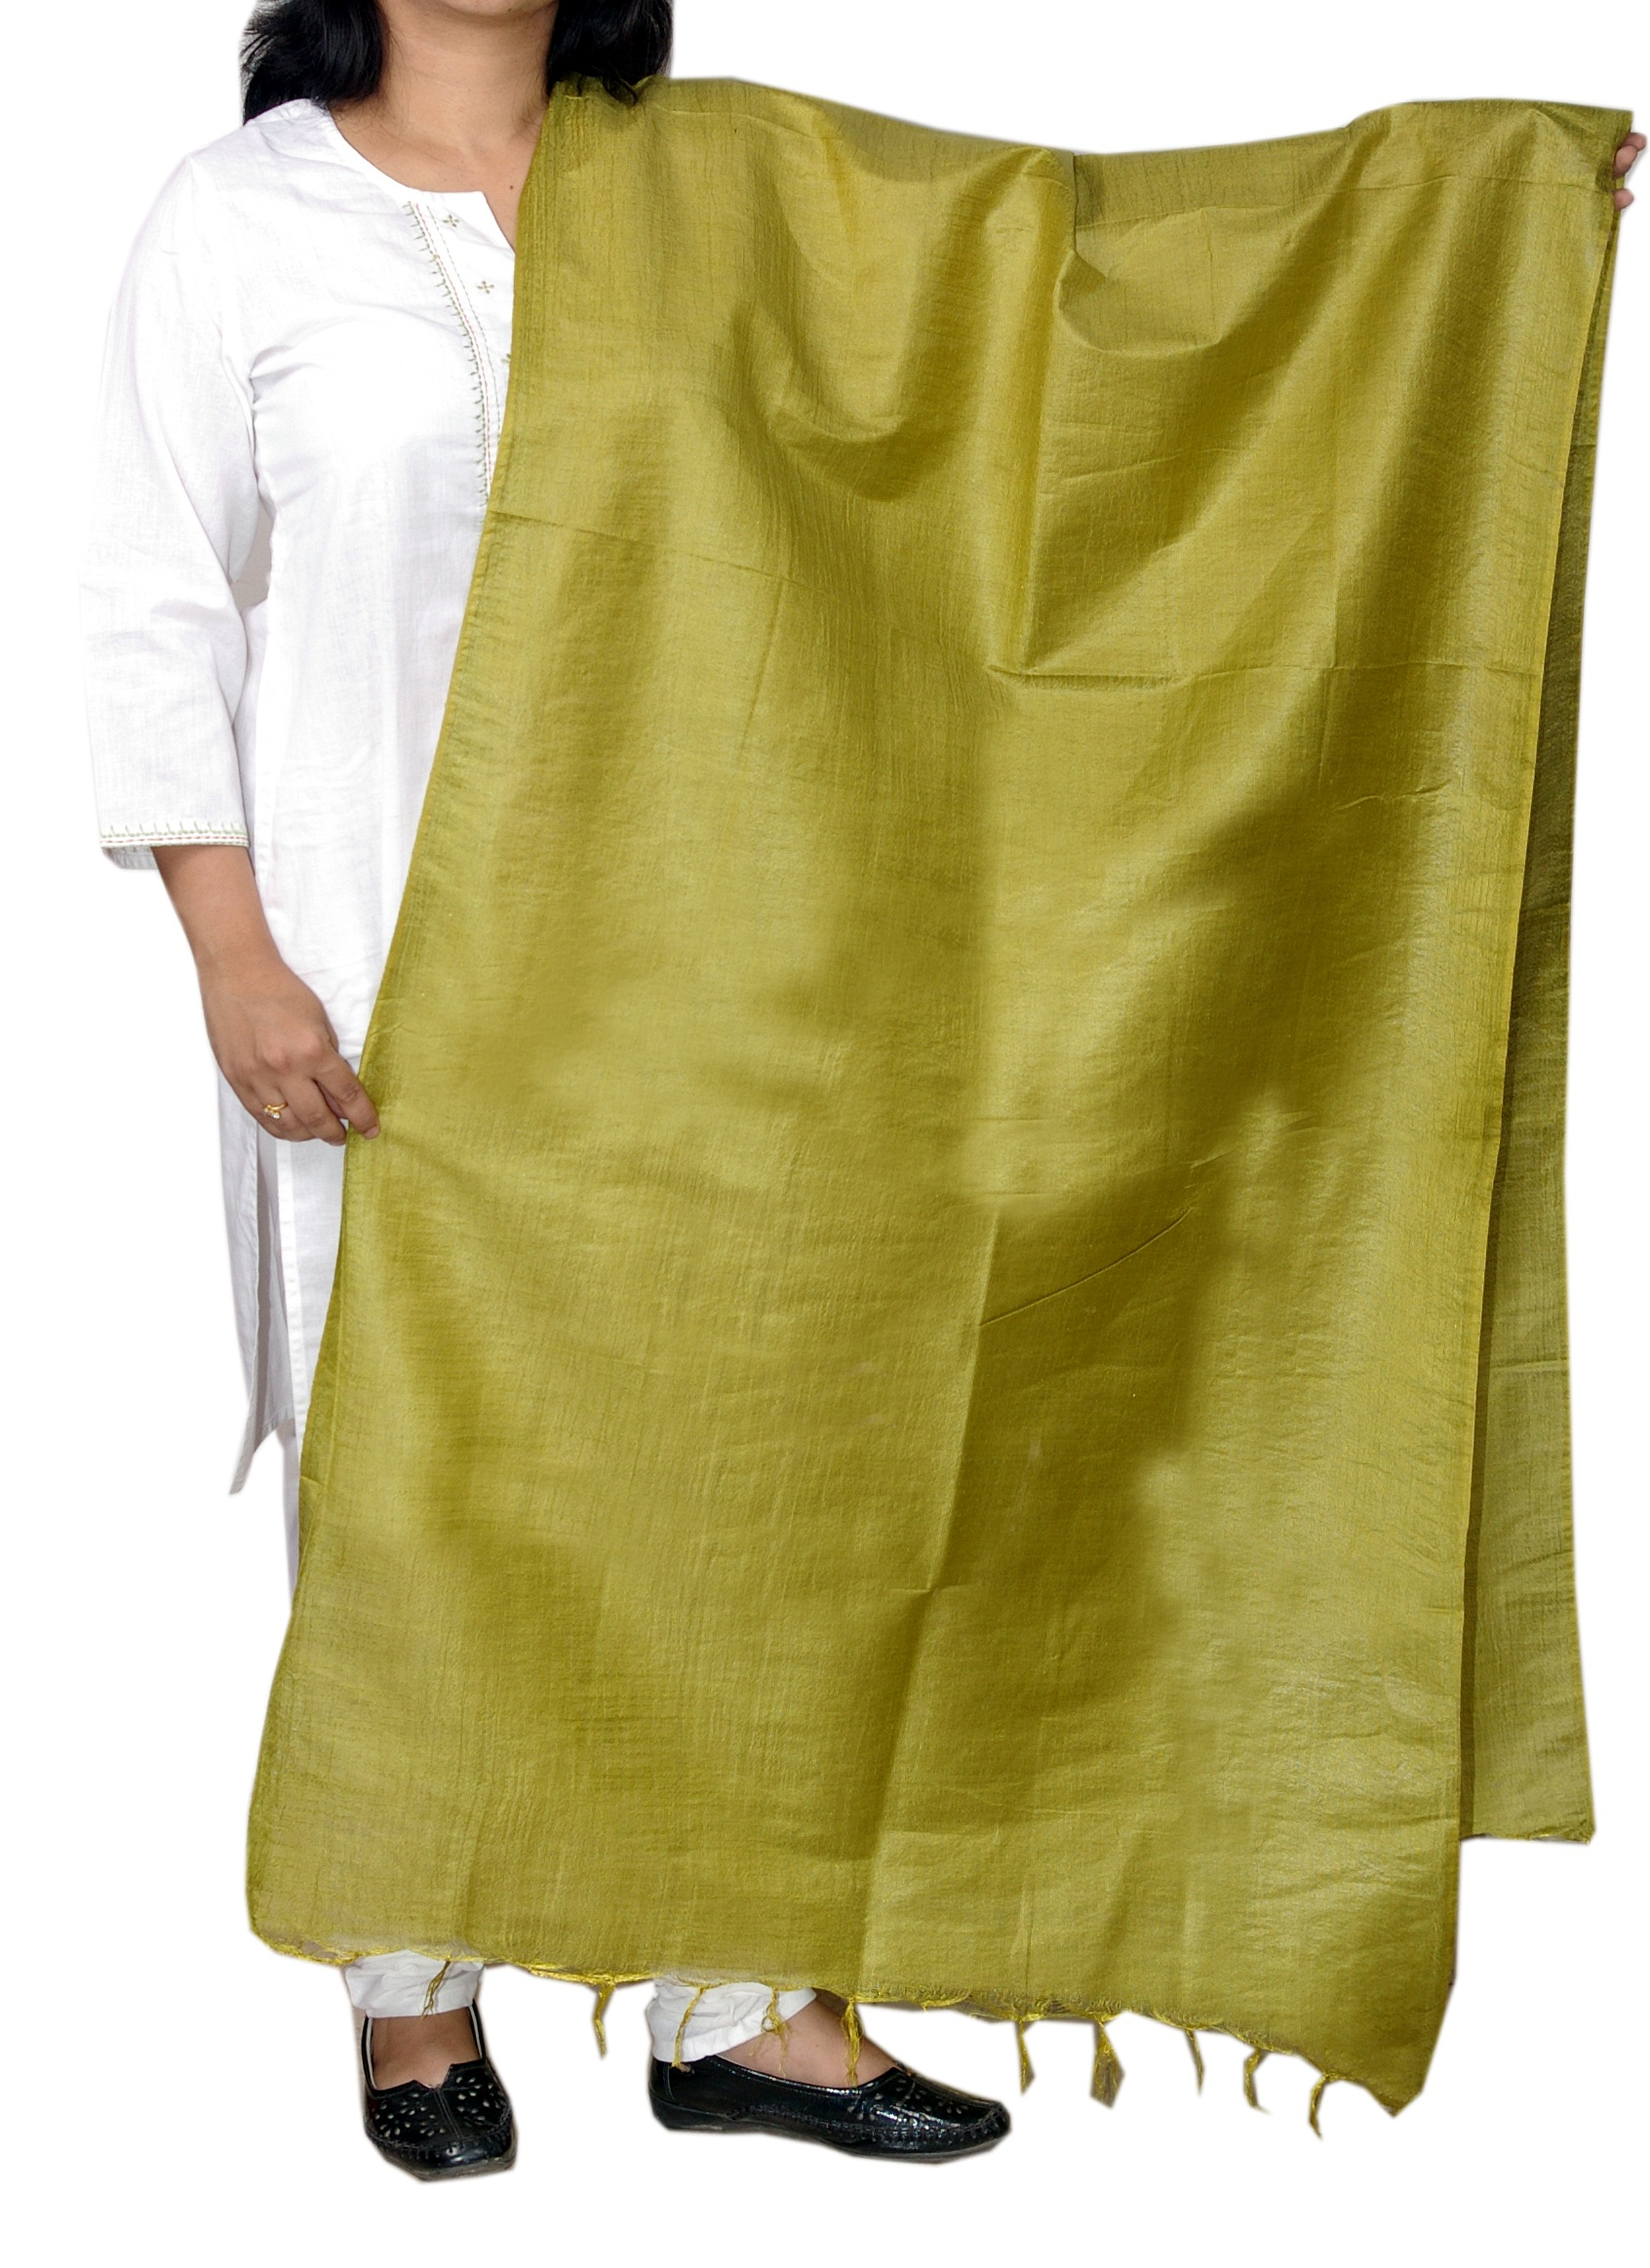 Silk Dupattas, Dupattas, Womens Wear, Indian Concepts, Vibrant Green Cotton-Silk Blend corporate Dupatta